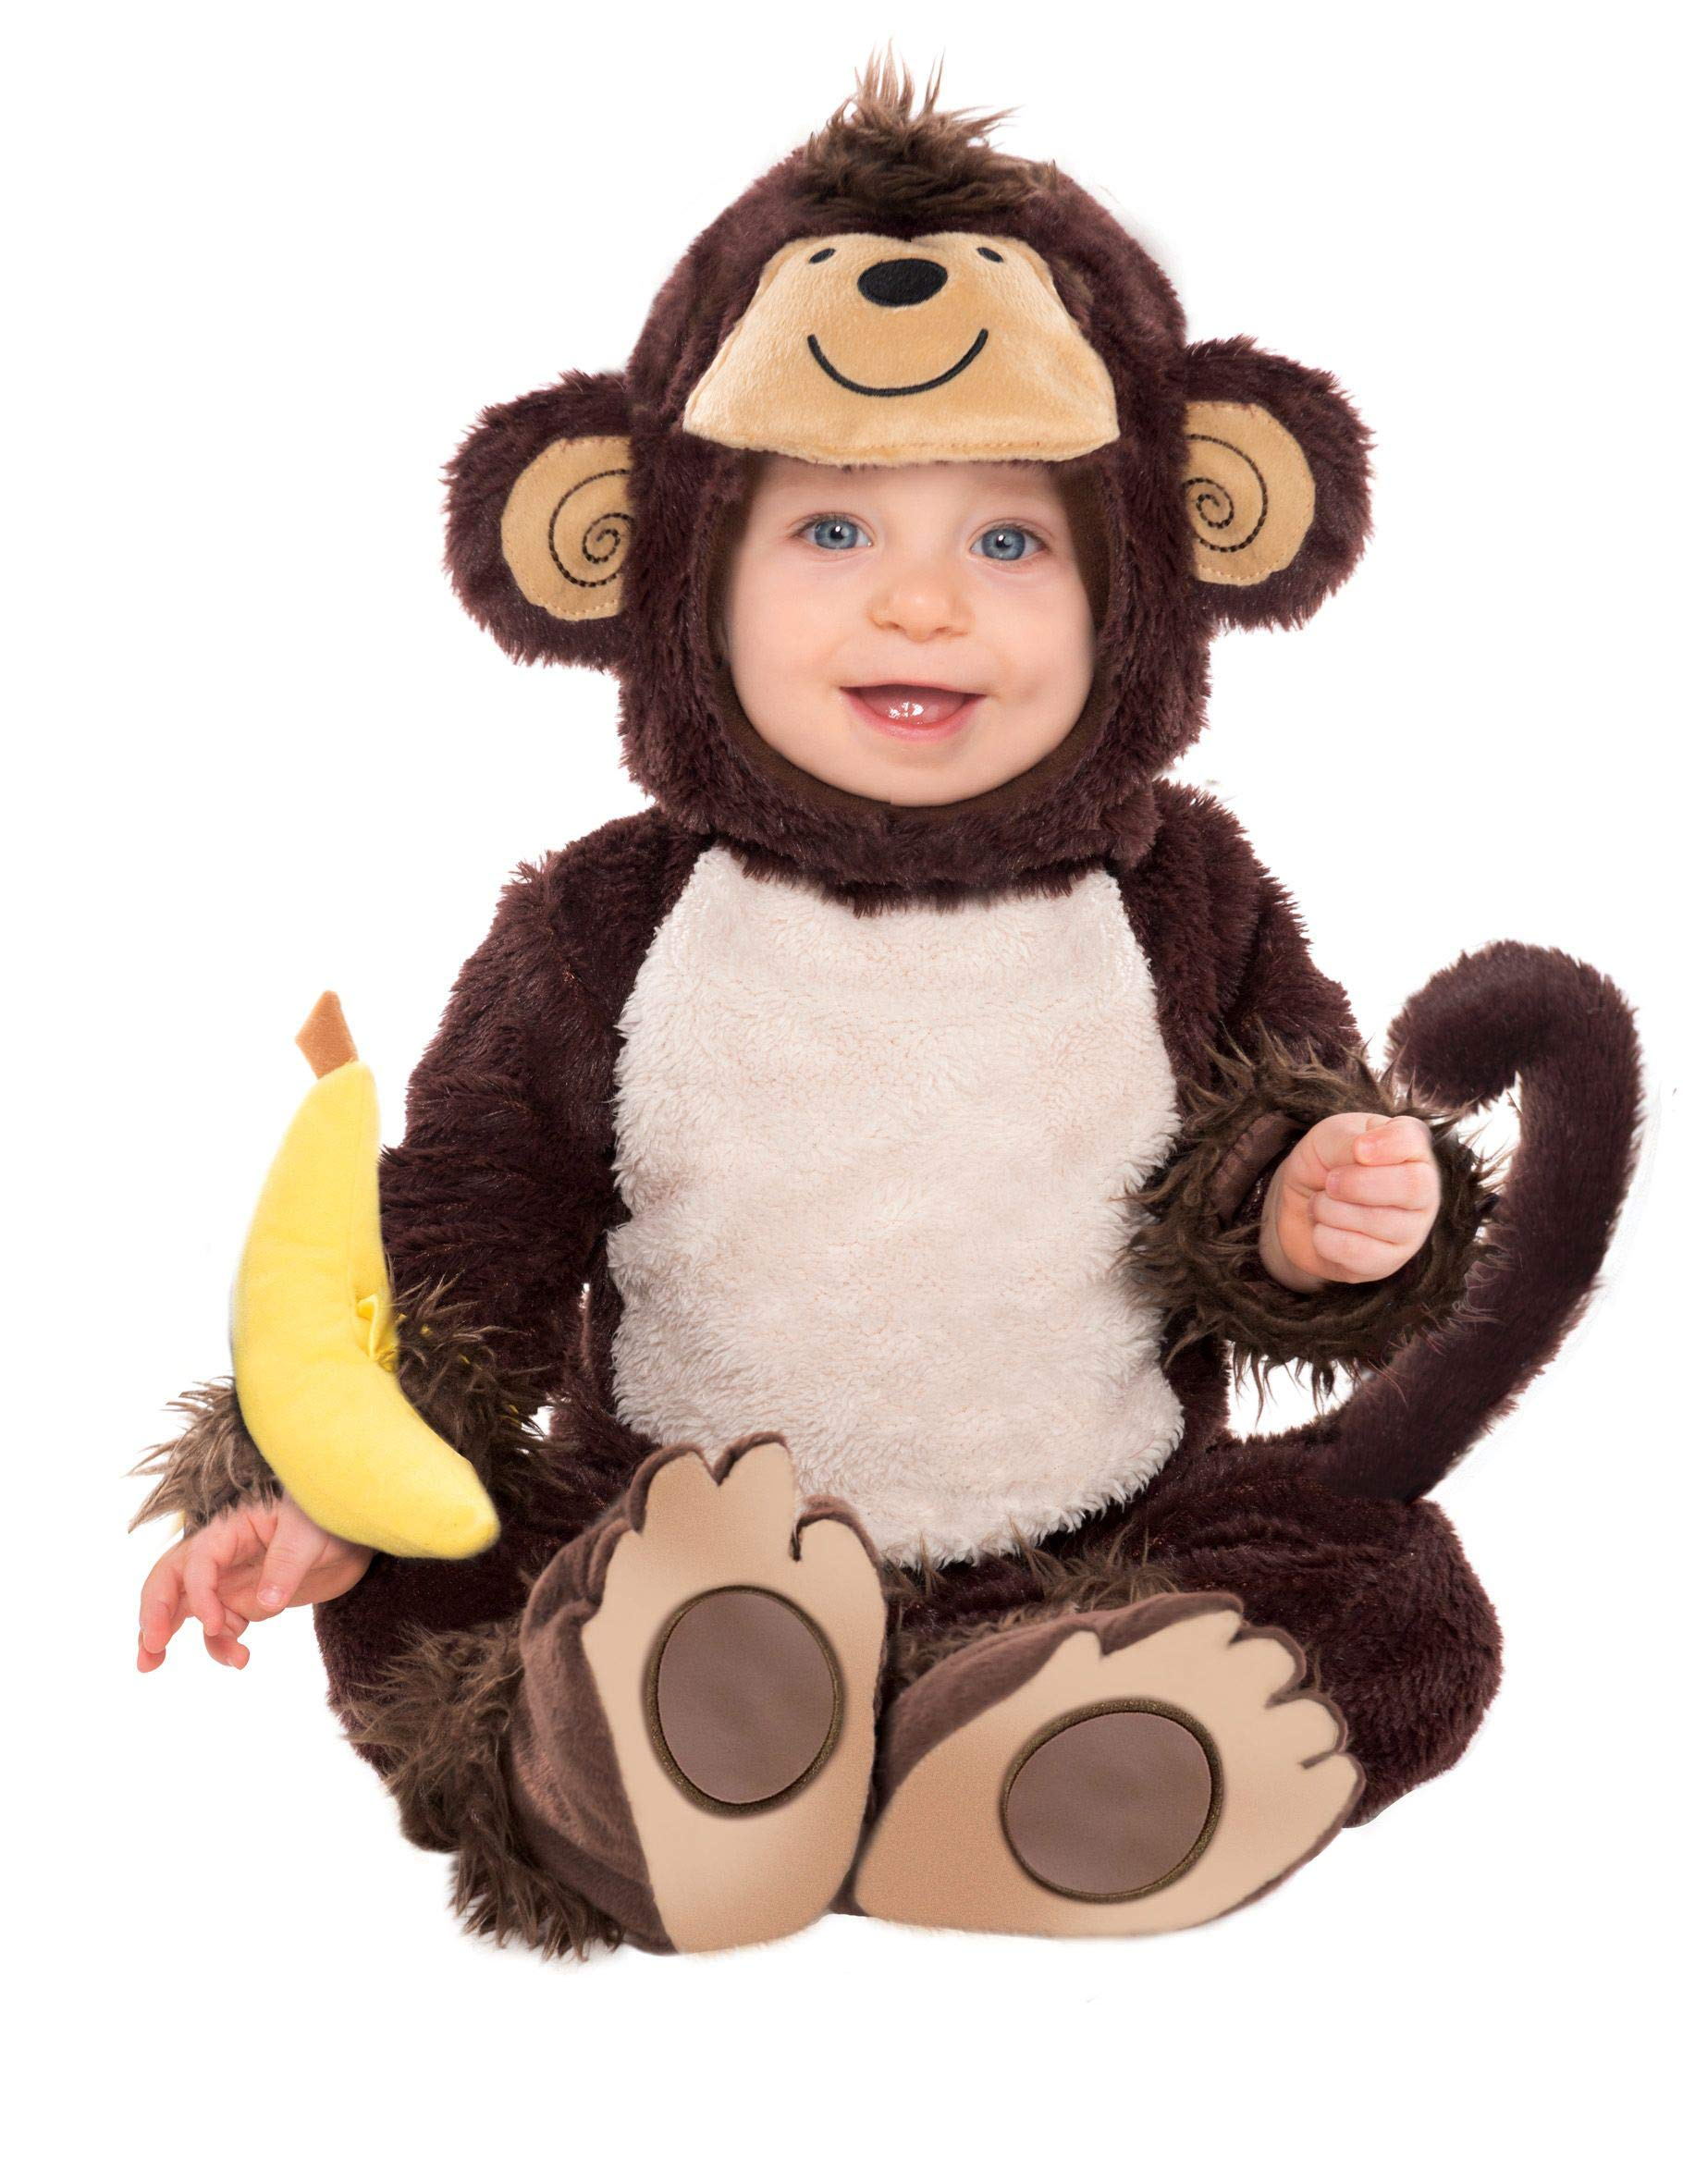 Christy's Toddlers Monkey around Costume (6-12 Months) by Amscan